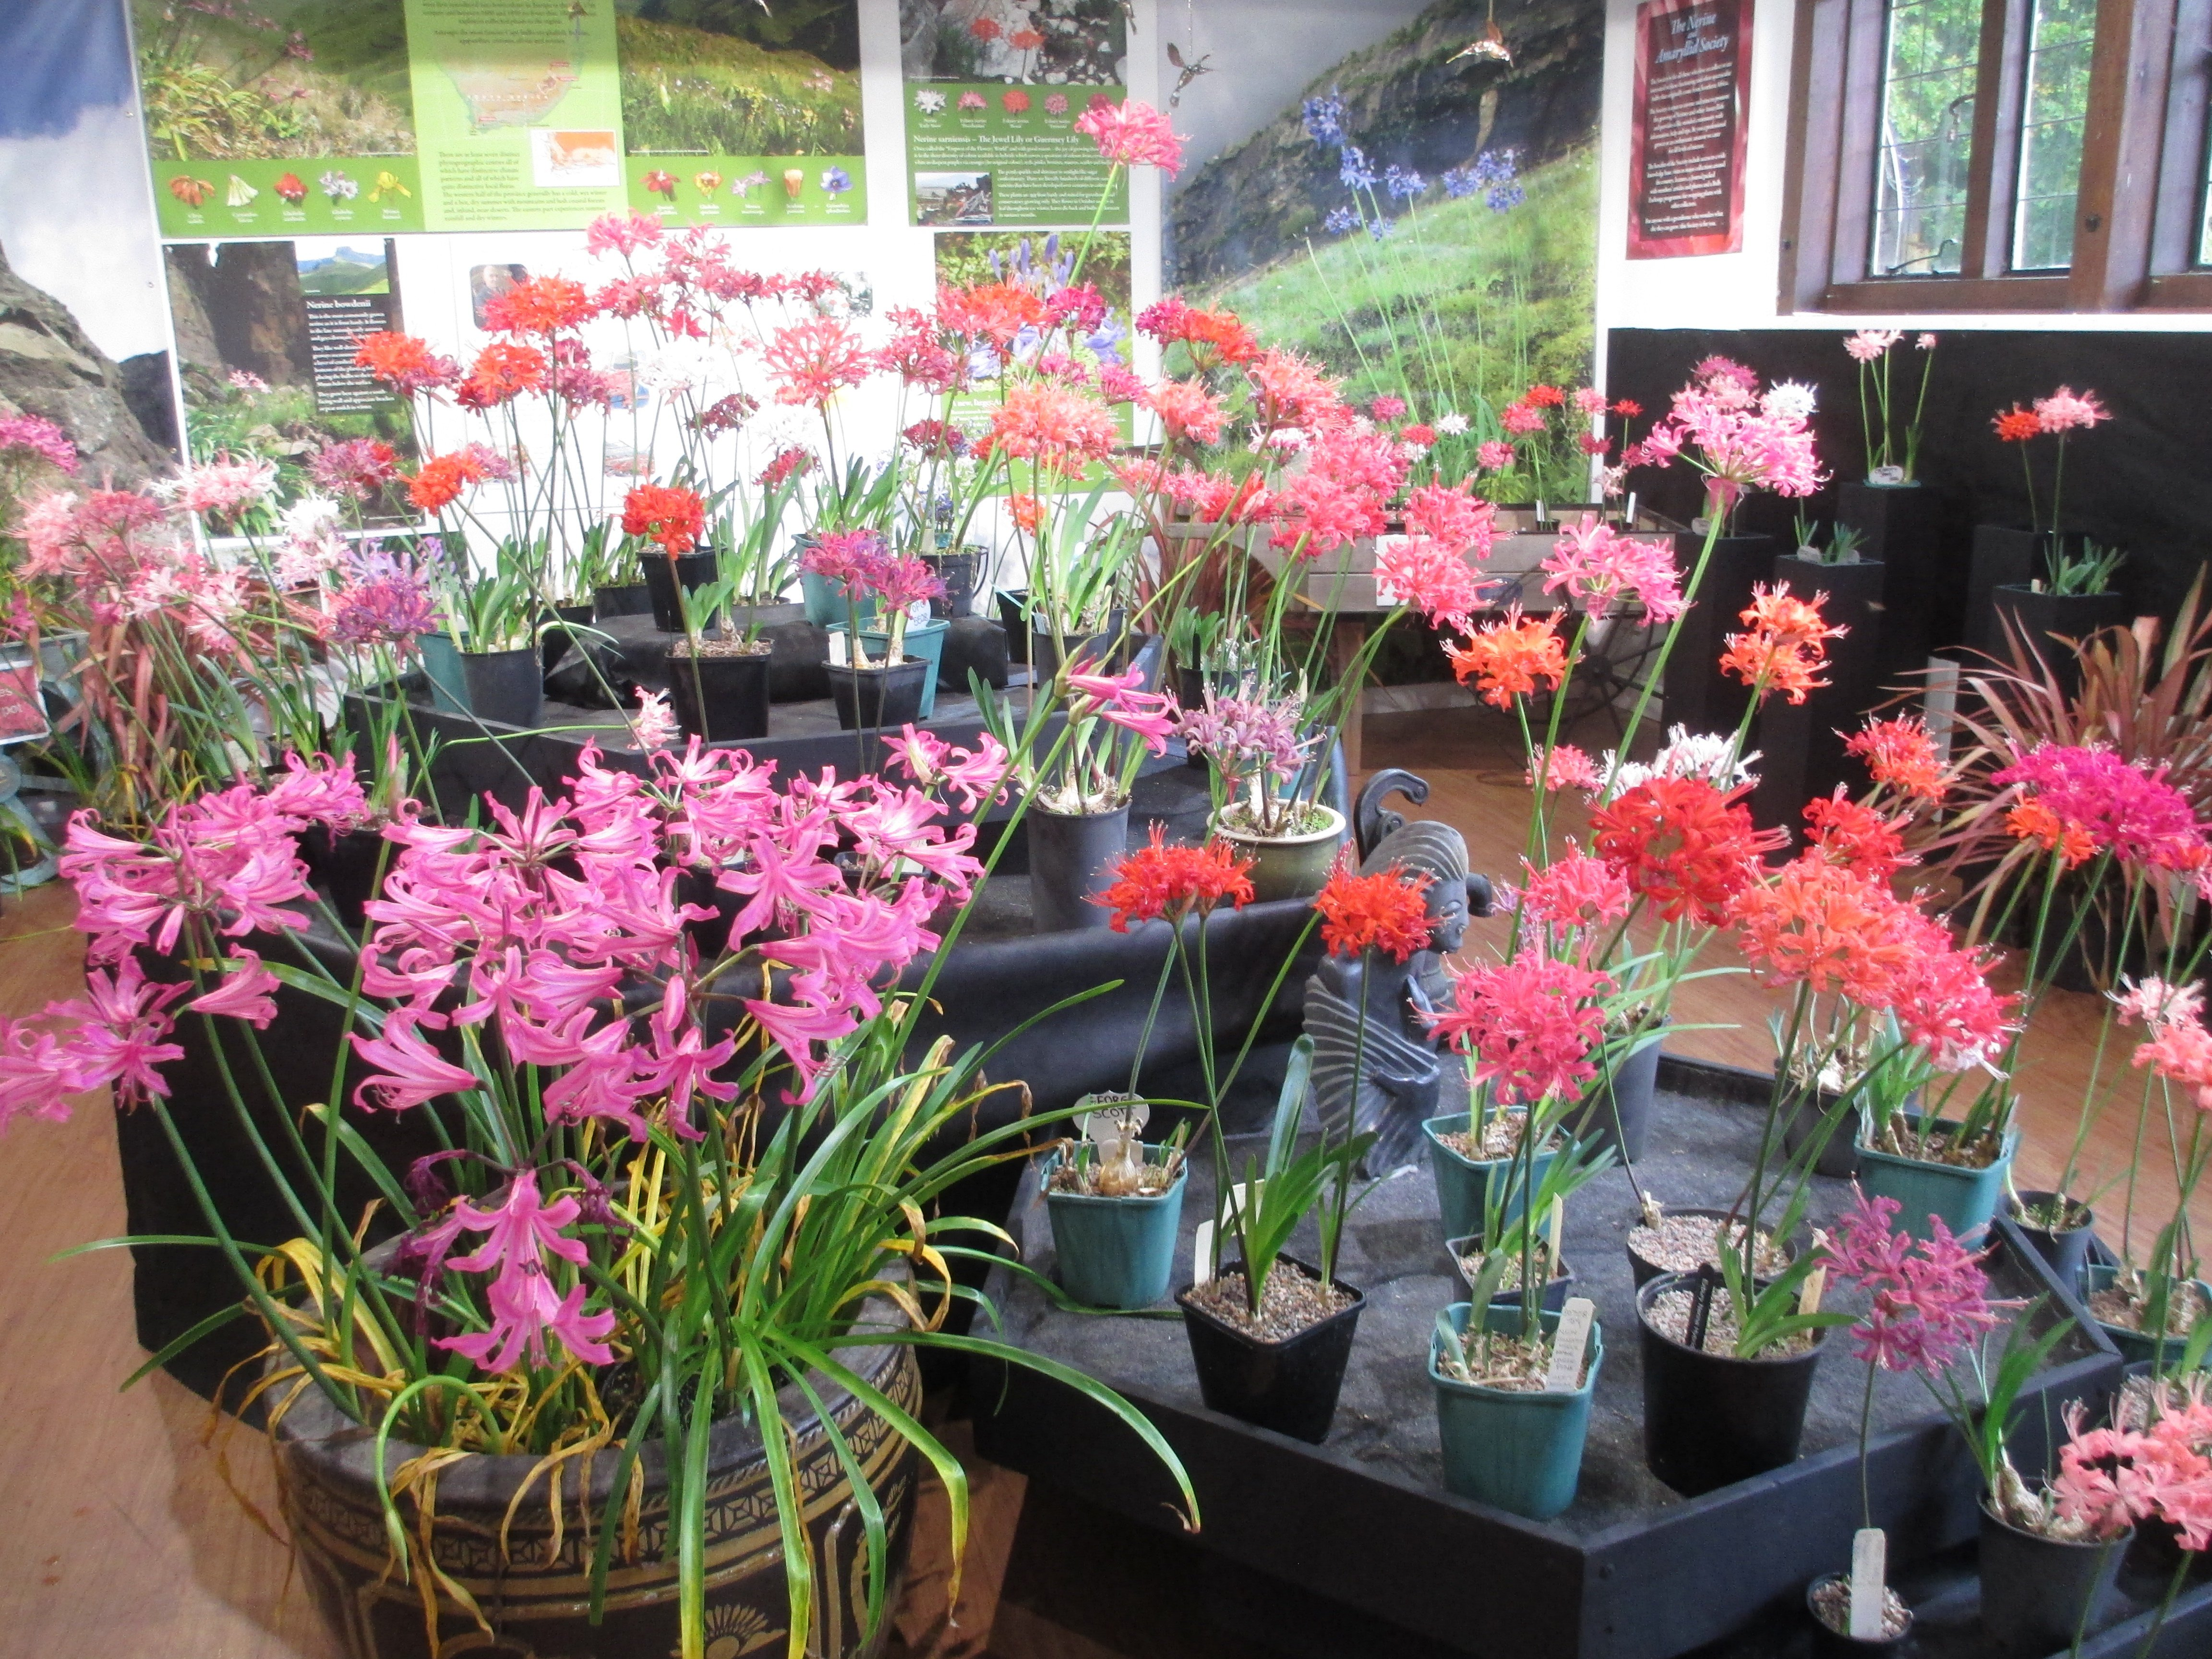 The display included Hardy Nerines (l. foreground) as well as Nerine Sarniensis.